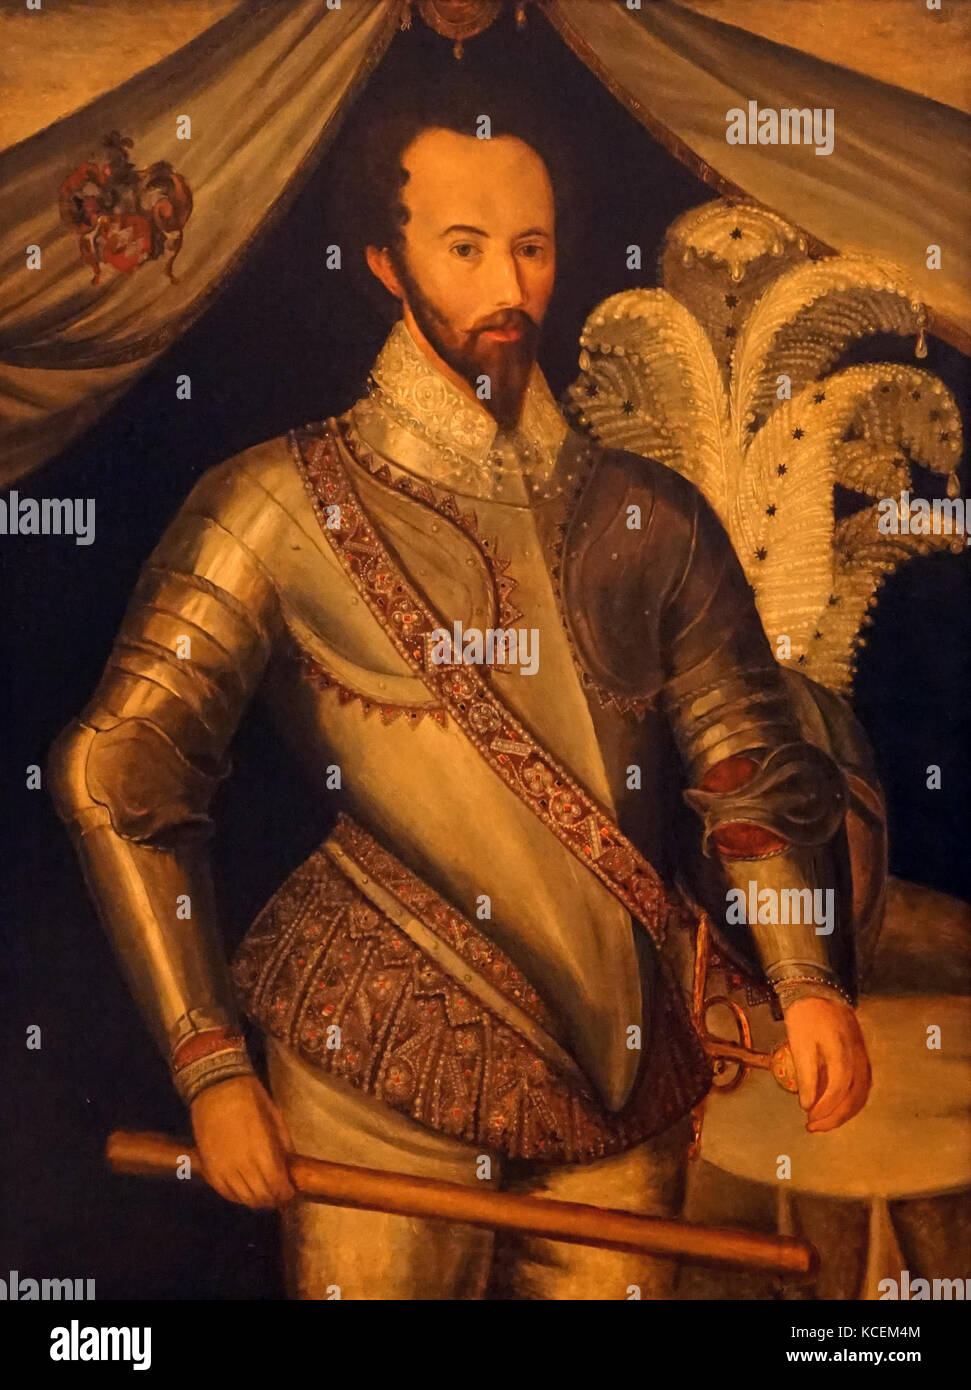 Portrait of Sir Walter Raleigh (1554-1618) an English landed gentleman, writer, poet, soldier, politician, courtier, - Stock Image